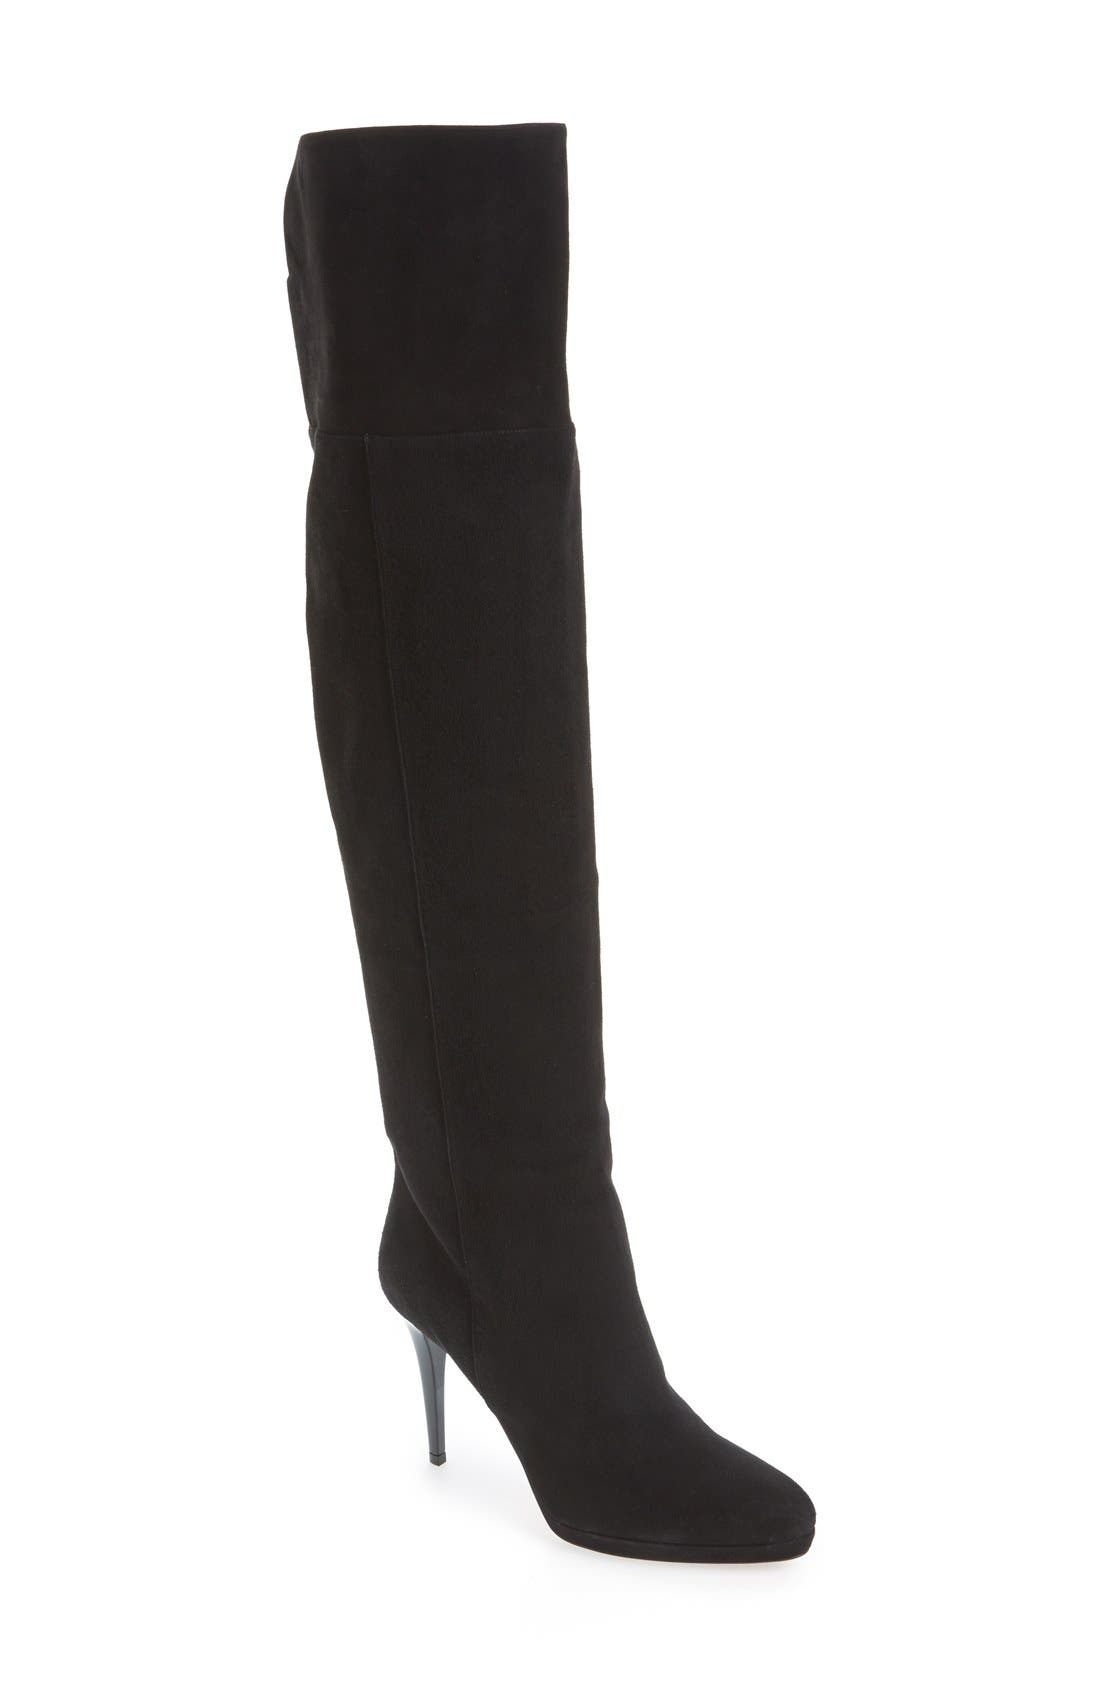 Alternate Image 1 Selected - Jimmy Choo Over the Knee Boot (Women)